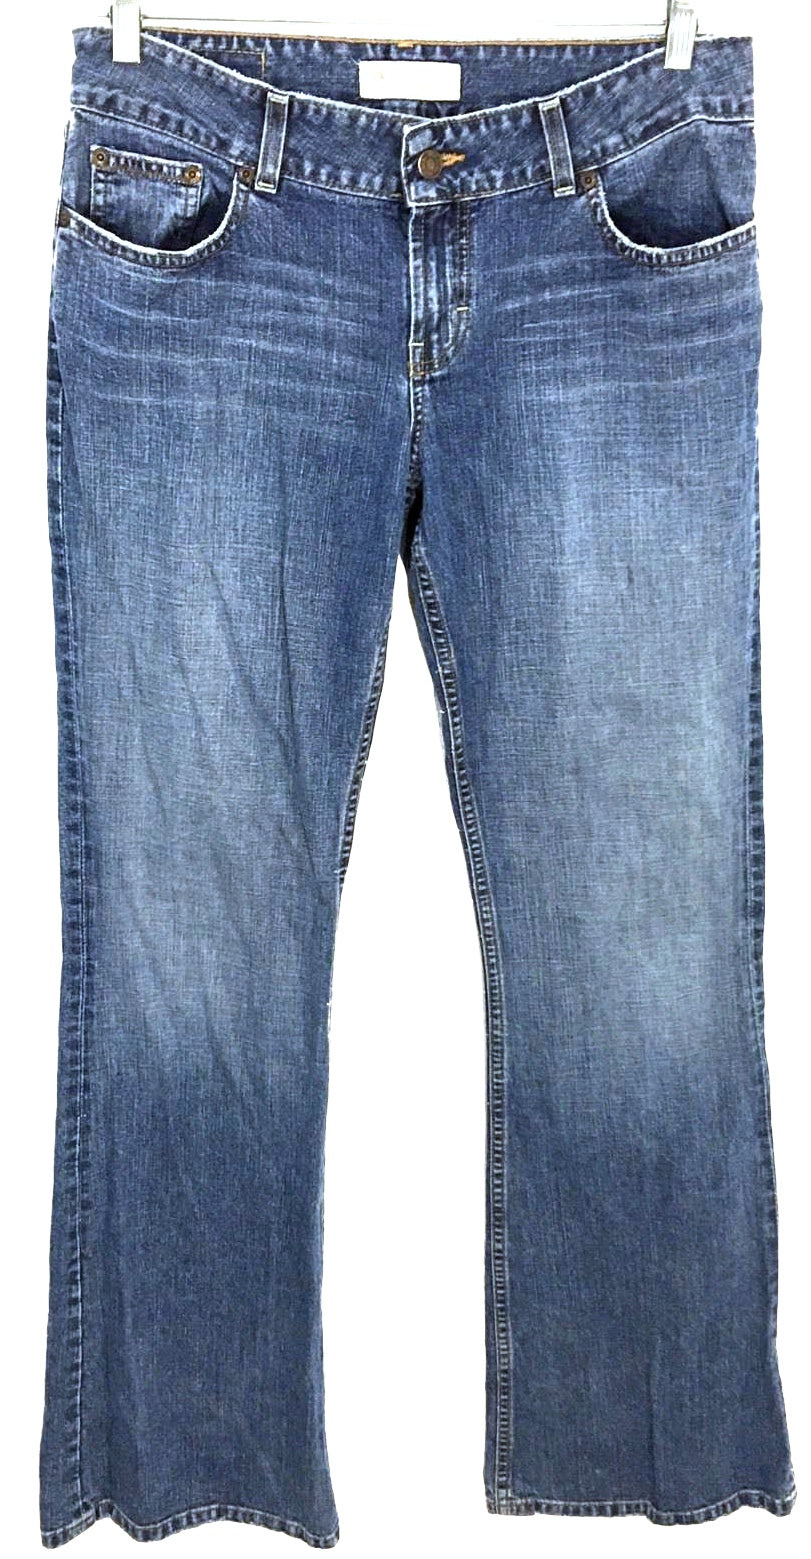 BKE Jeans Culture Light Wash Boot Cut Cotton Long BKL406L Women's Size 30 x 33.5 - Preowned - FunkyCrap Boutique